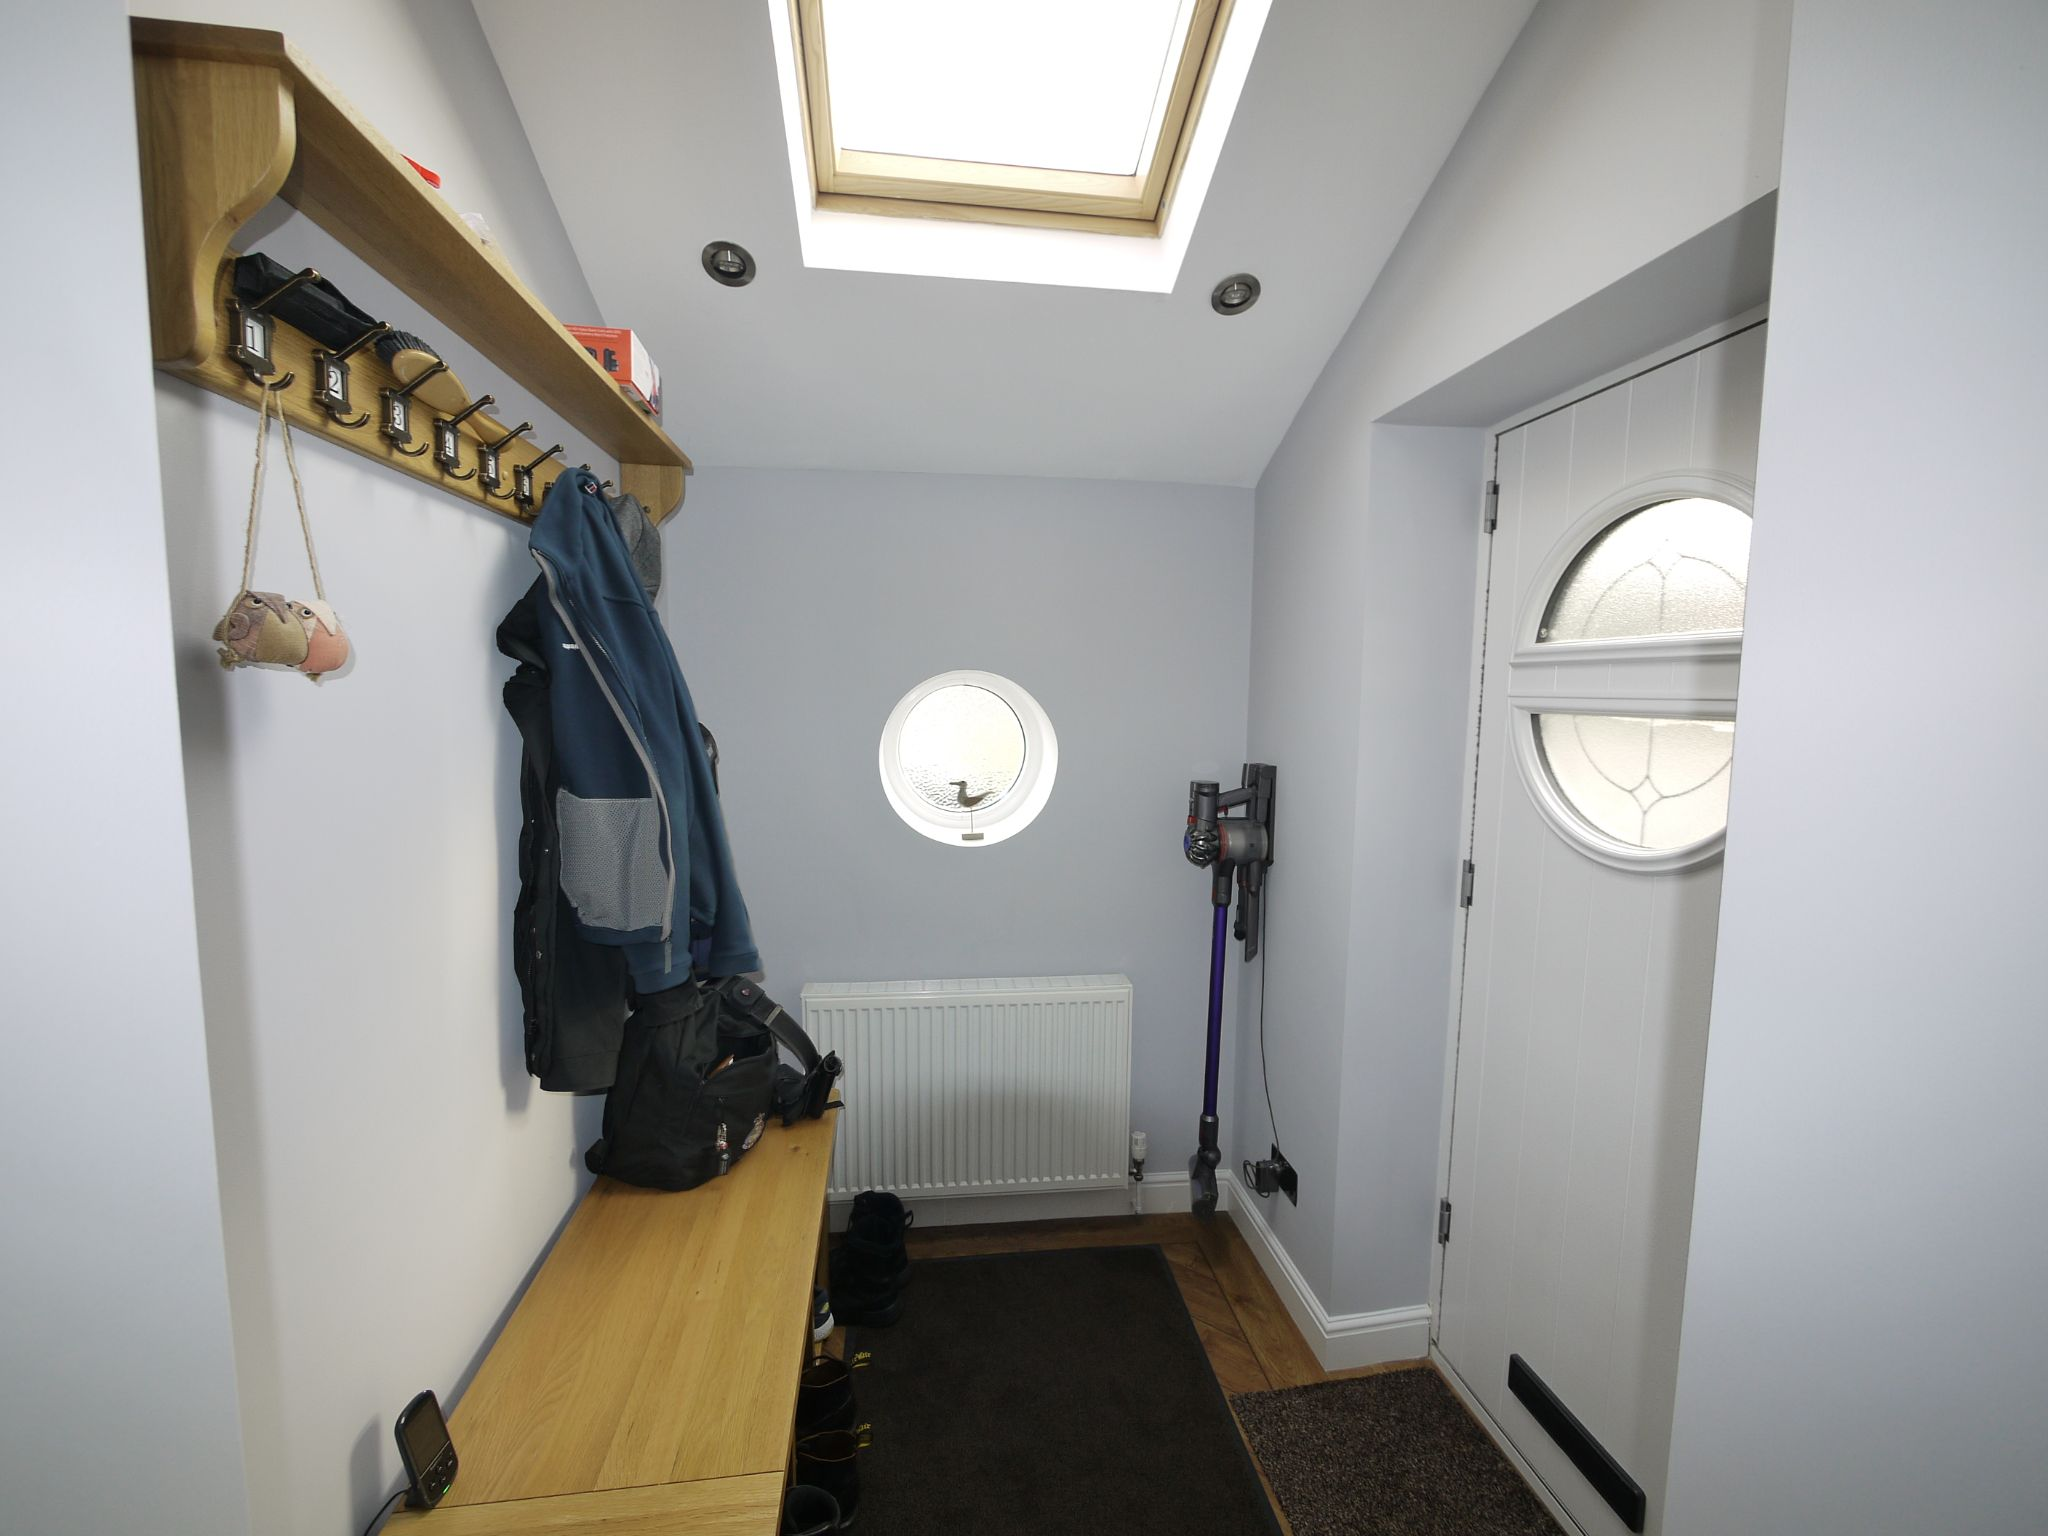 1 bedroom detached house For Sale in Brighouse - Photograph 8.